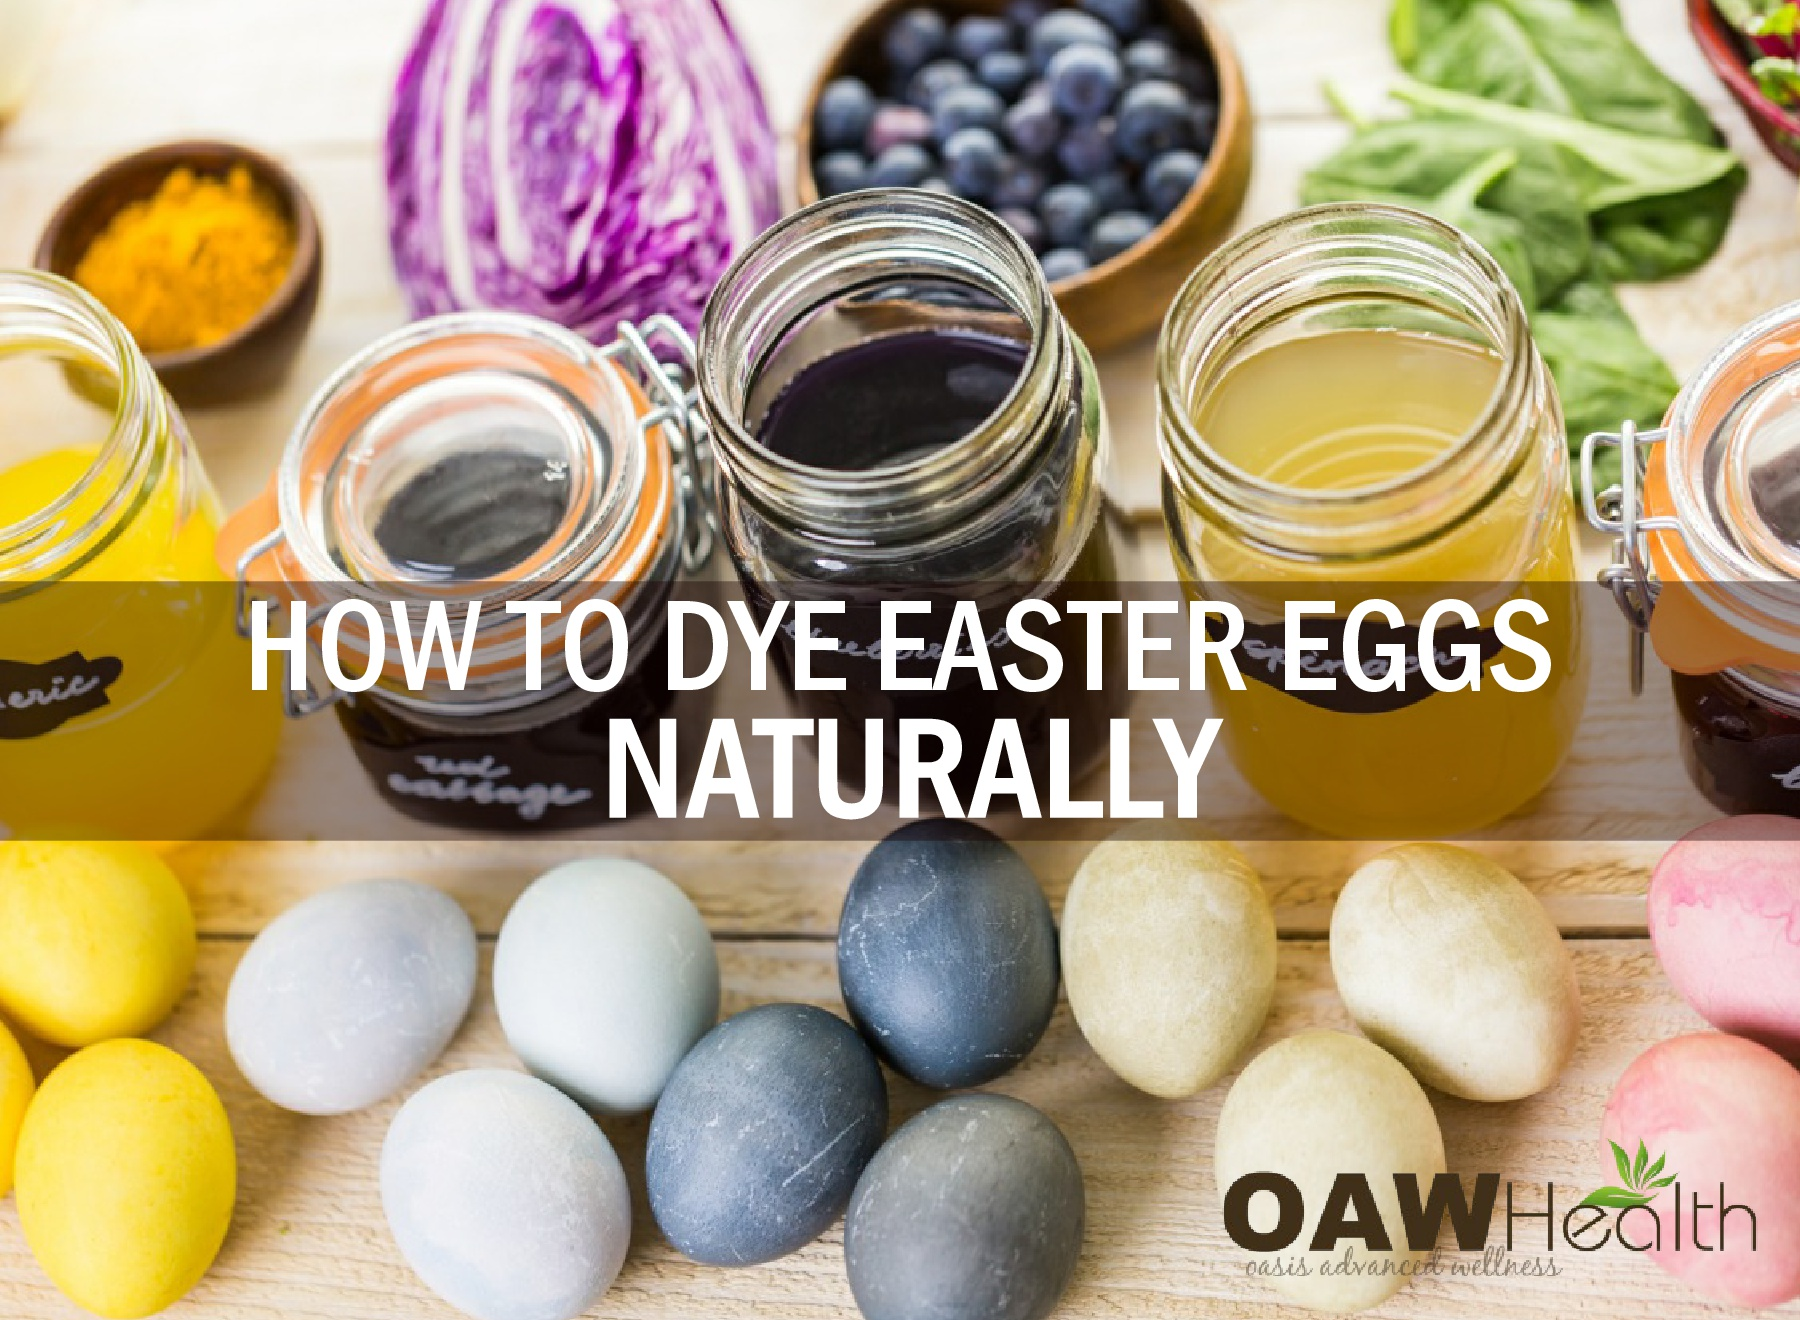 DIY Natural Dyes for Easter Eggs